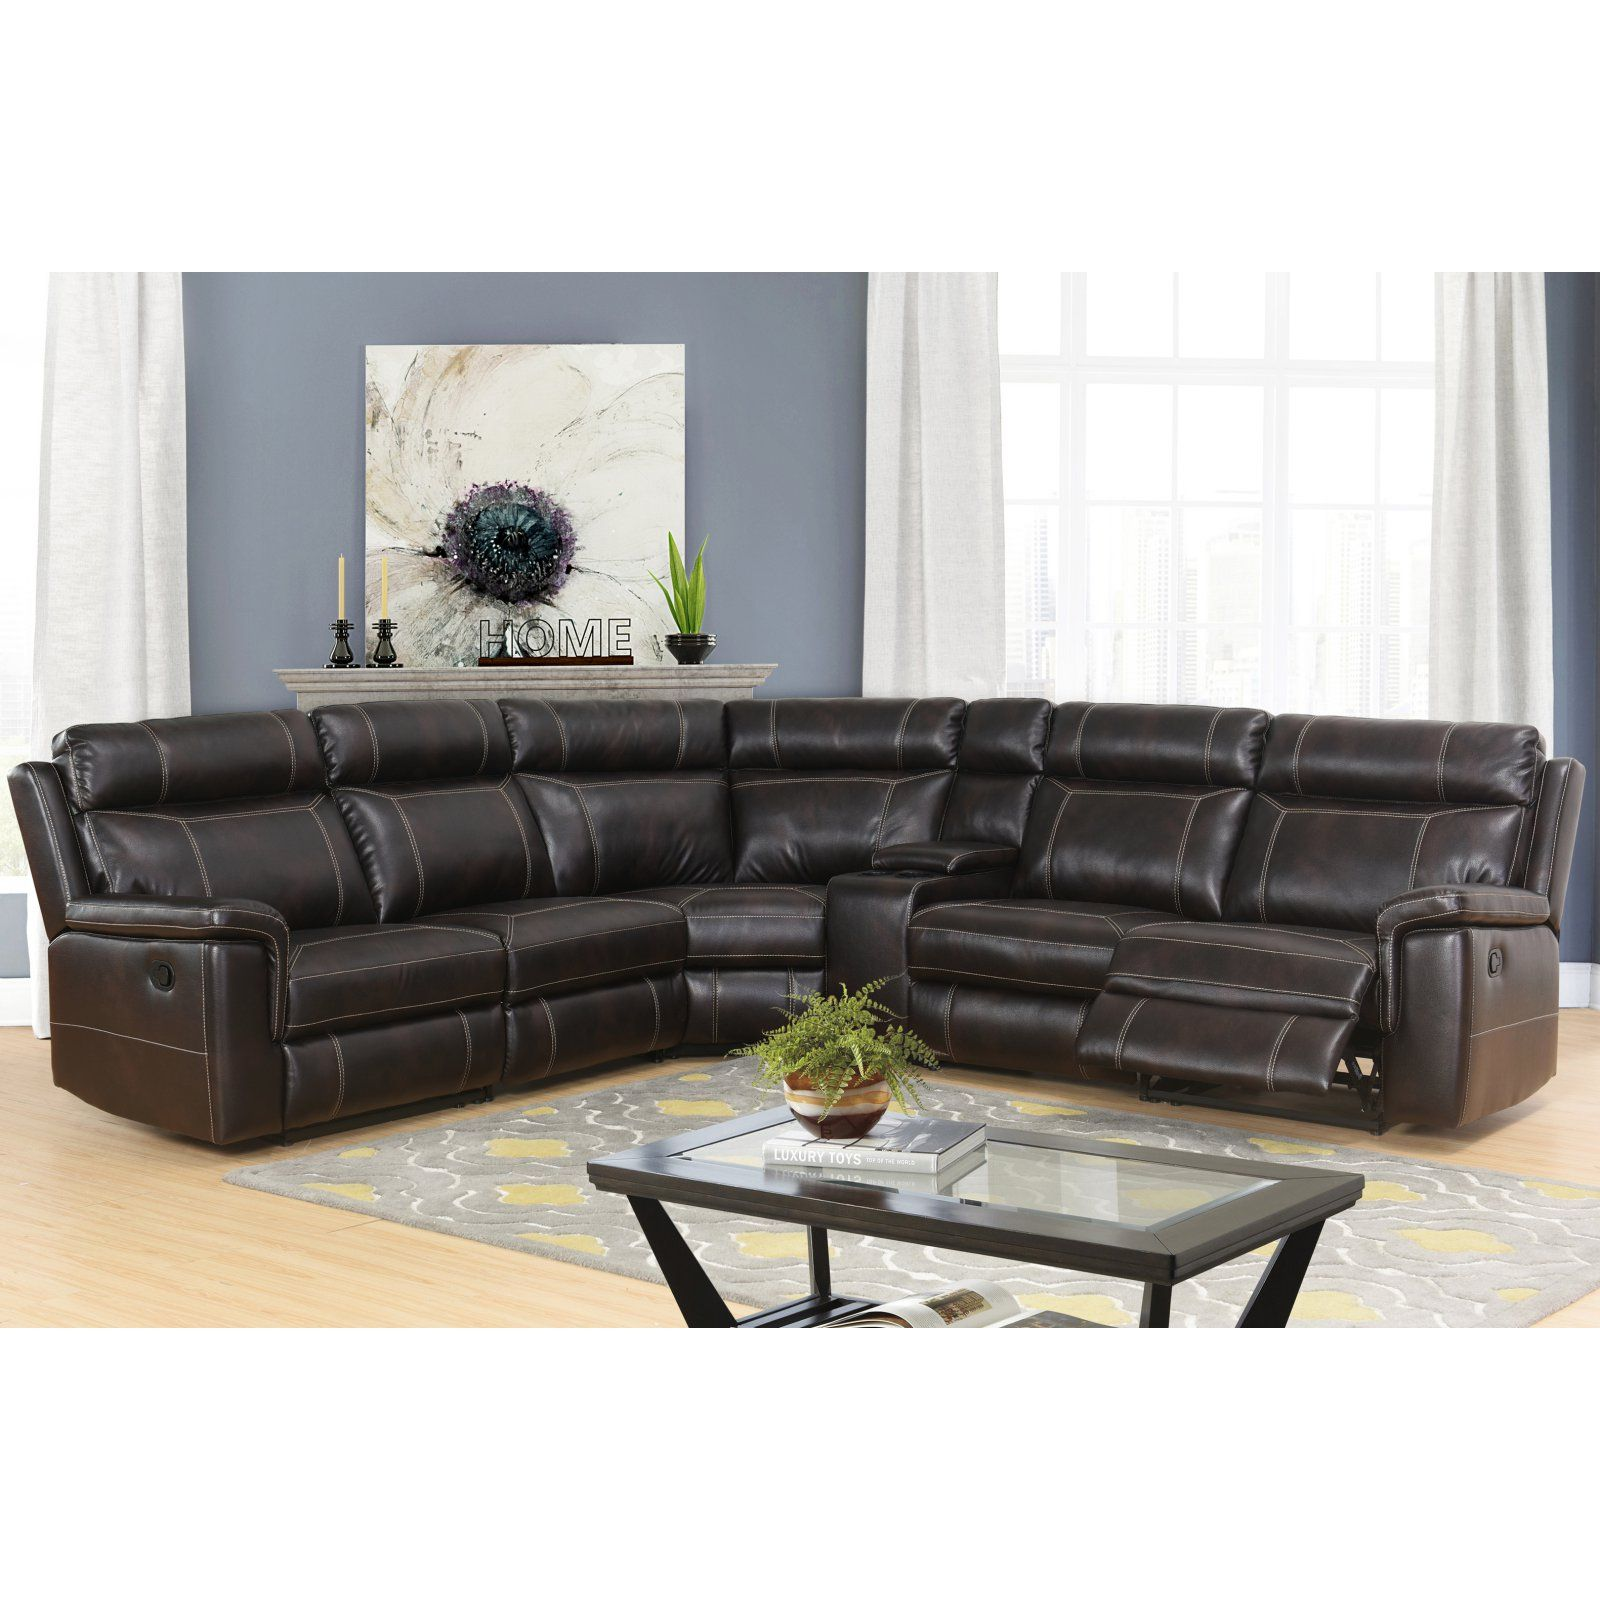 Best Abbyson Living Hannah Reclining Sectional With Console In 400 x 300